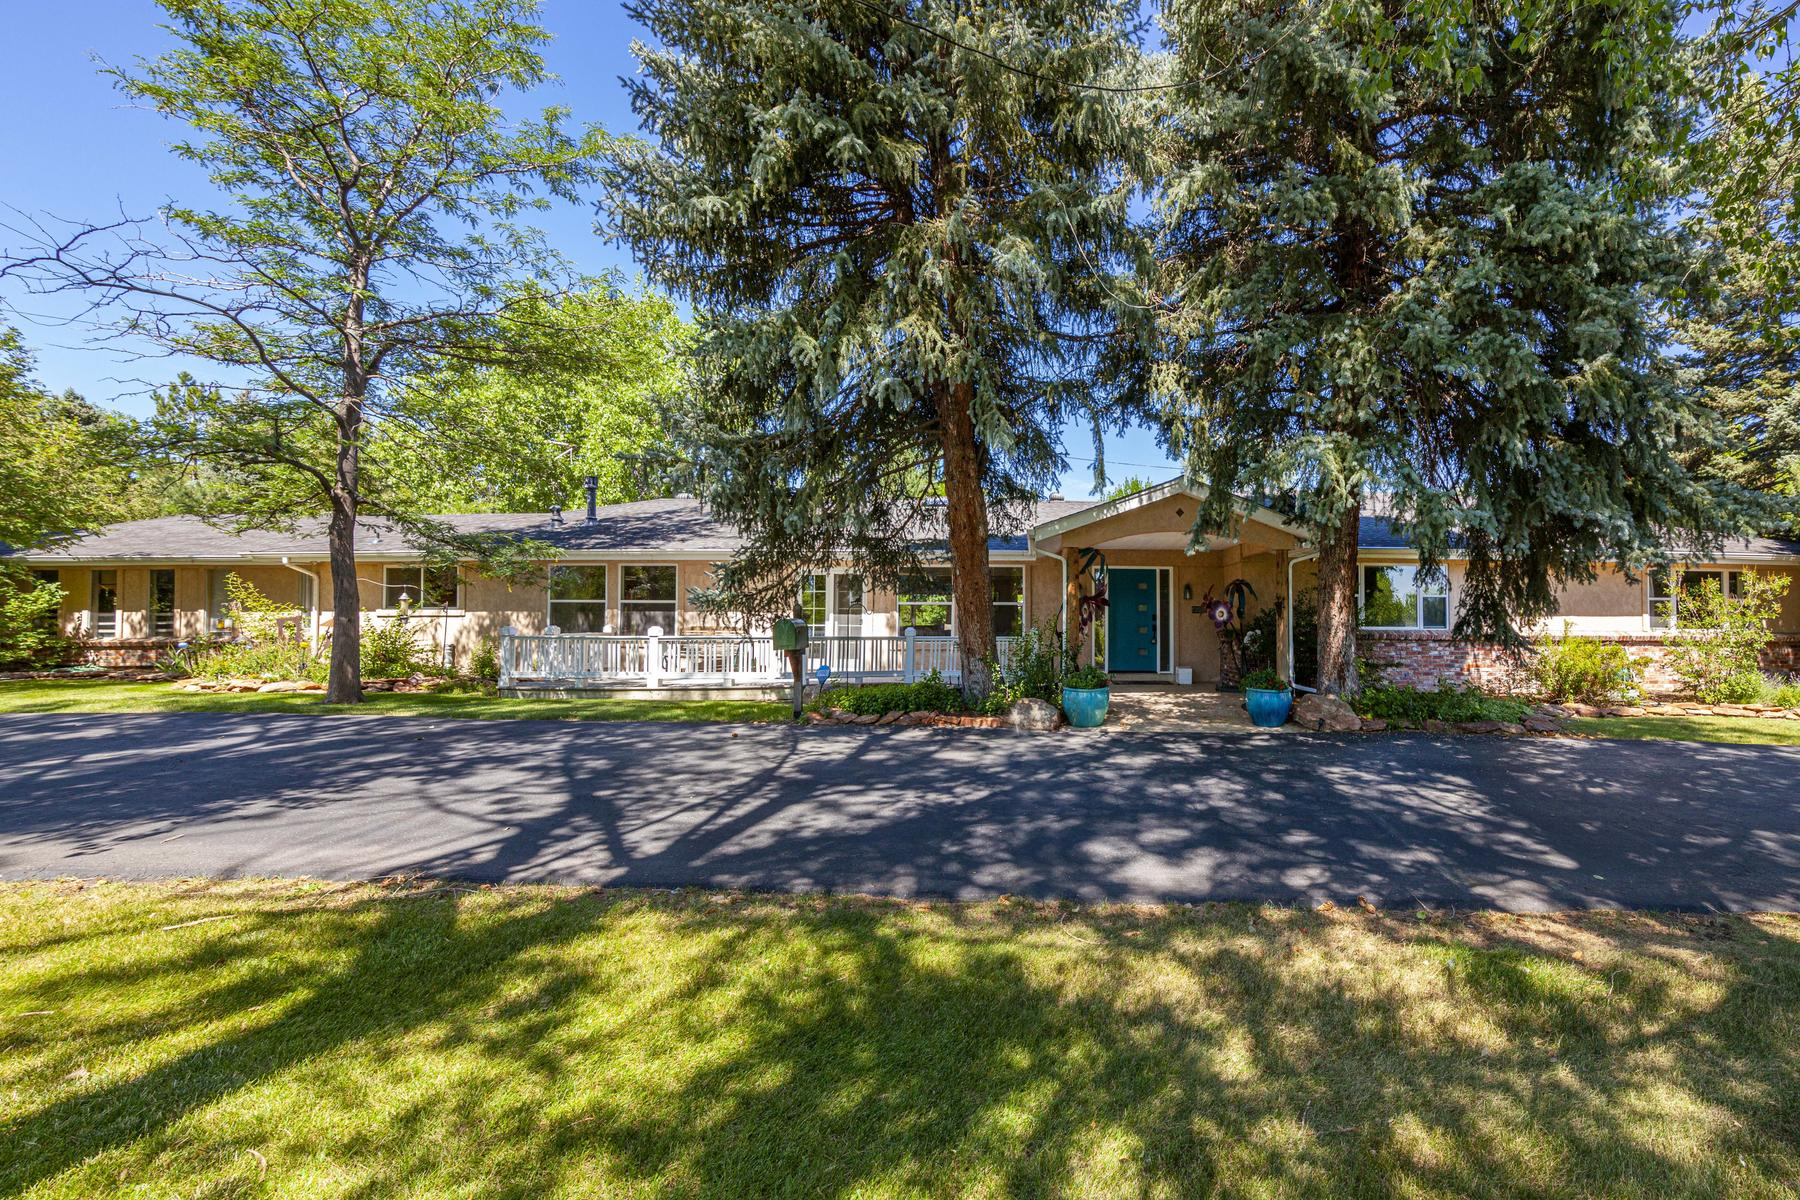 Single Family Homes for Sale at Beautiful Sprawling Ranch in a Stunning Private Lake Community. 4551 Prospect Street Littleton, Colorado 80123 United States